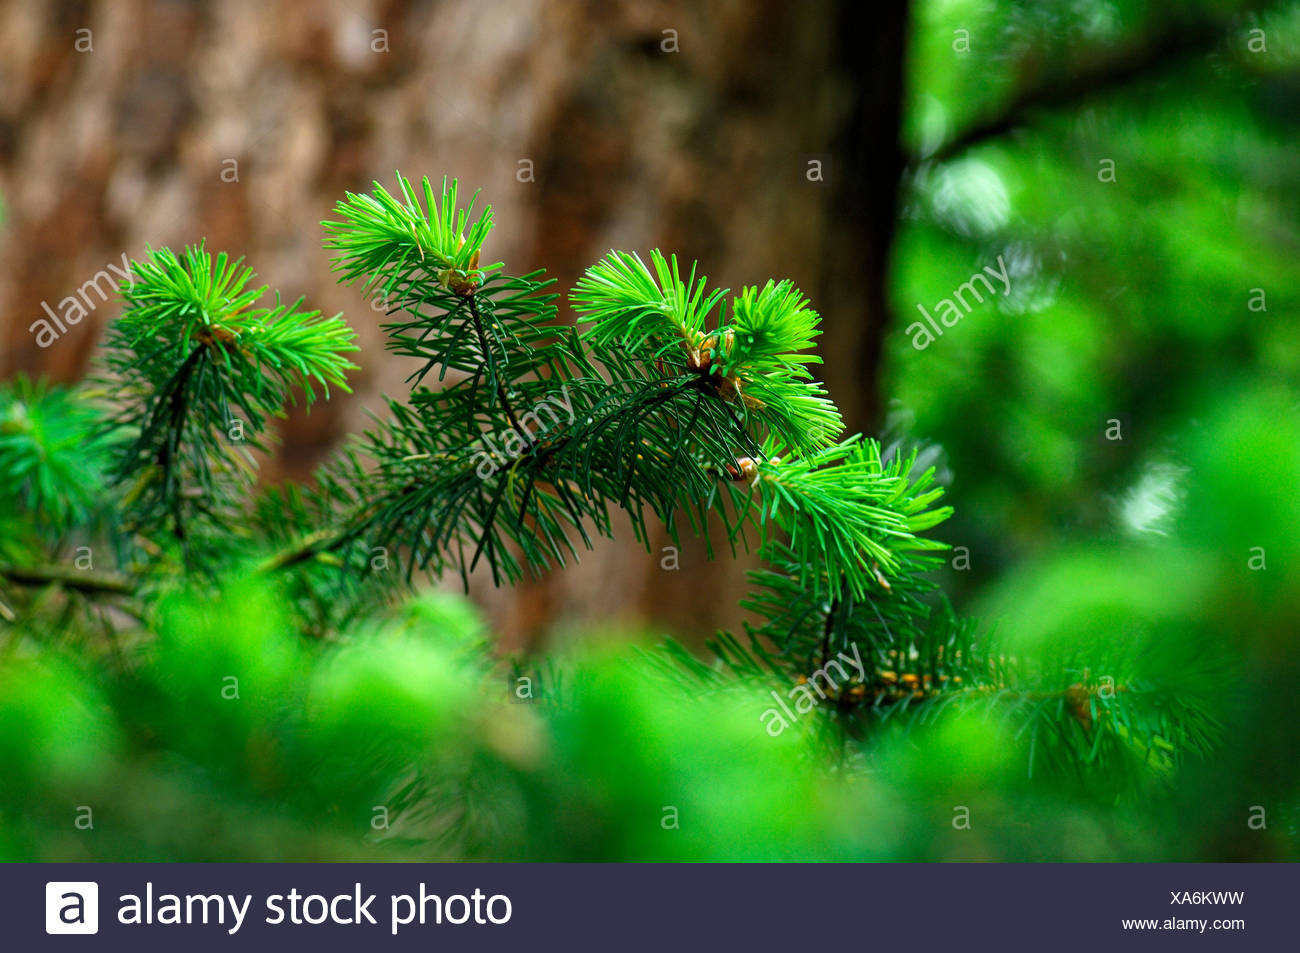 Budding branches of Douglas-fir in close-up - Stock Image